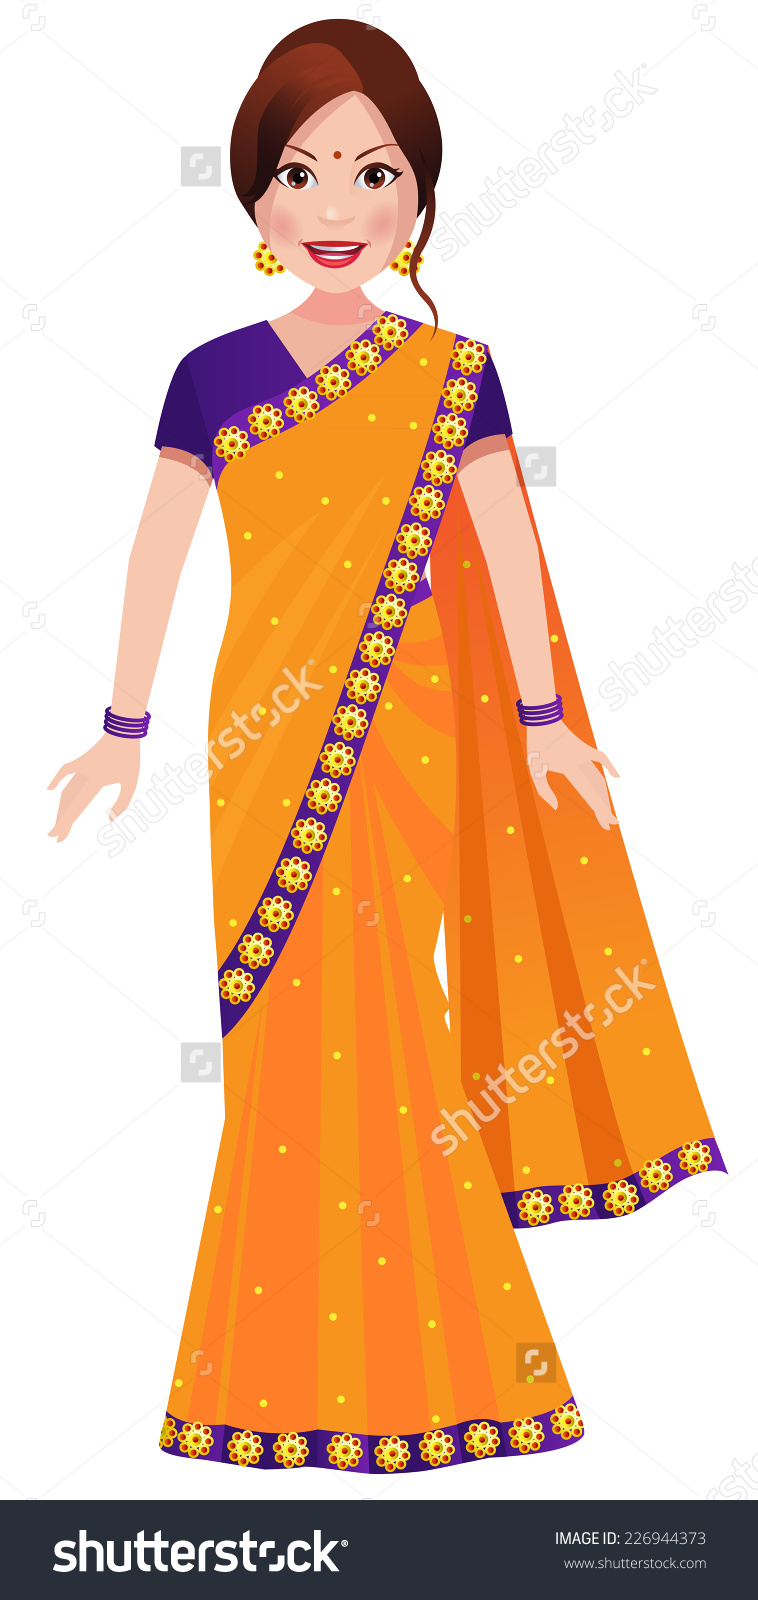 Traditional Indian Woman Clipart.